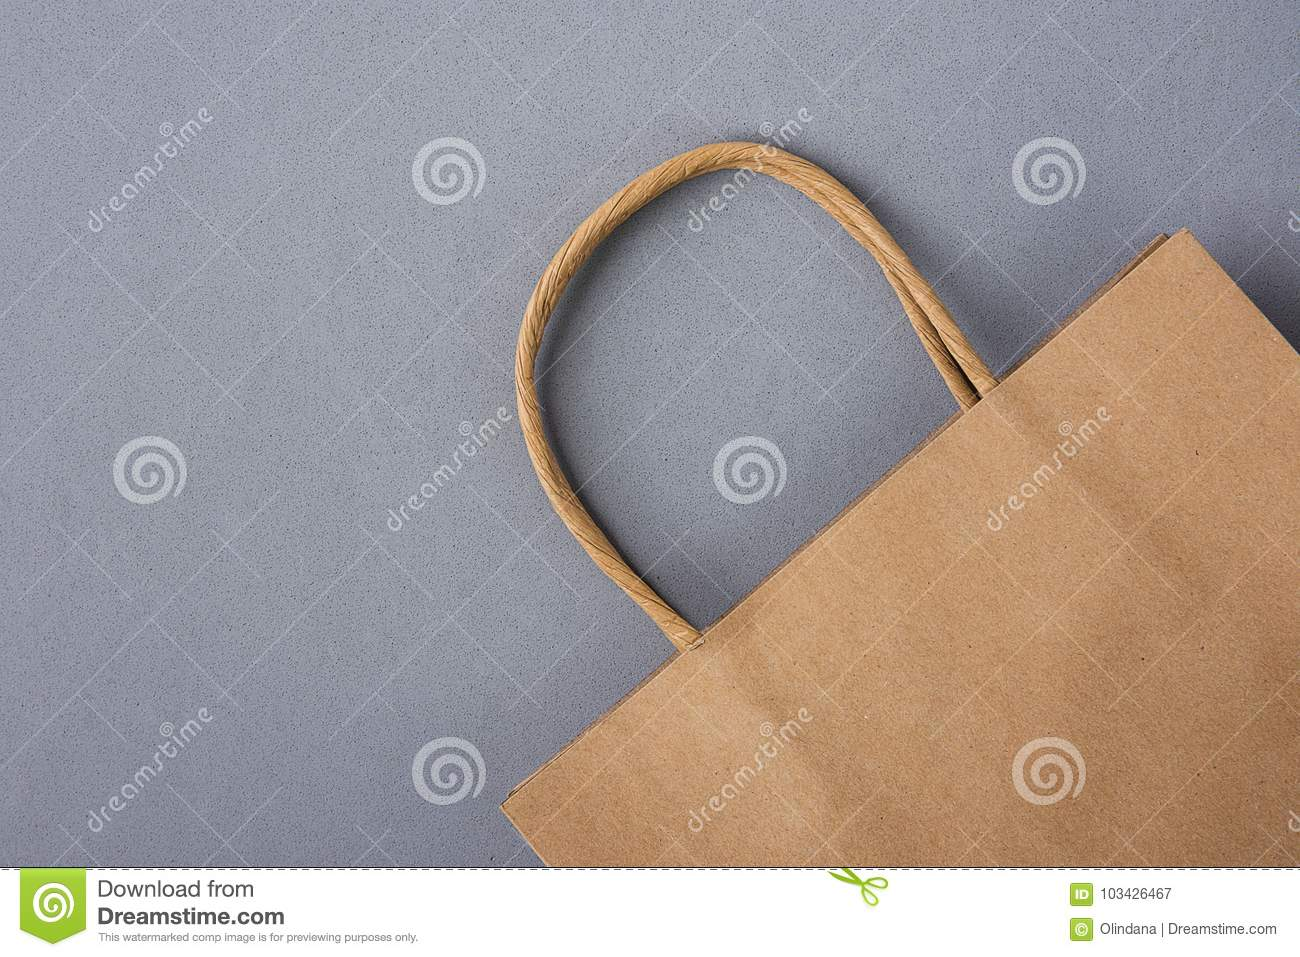 Empty Brown Craft Paper Bag on Gray Background. Sales Discount Shopping. Black Friday Cyber Monday. Christmas Gifts. Copy Space